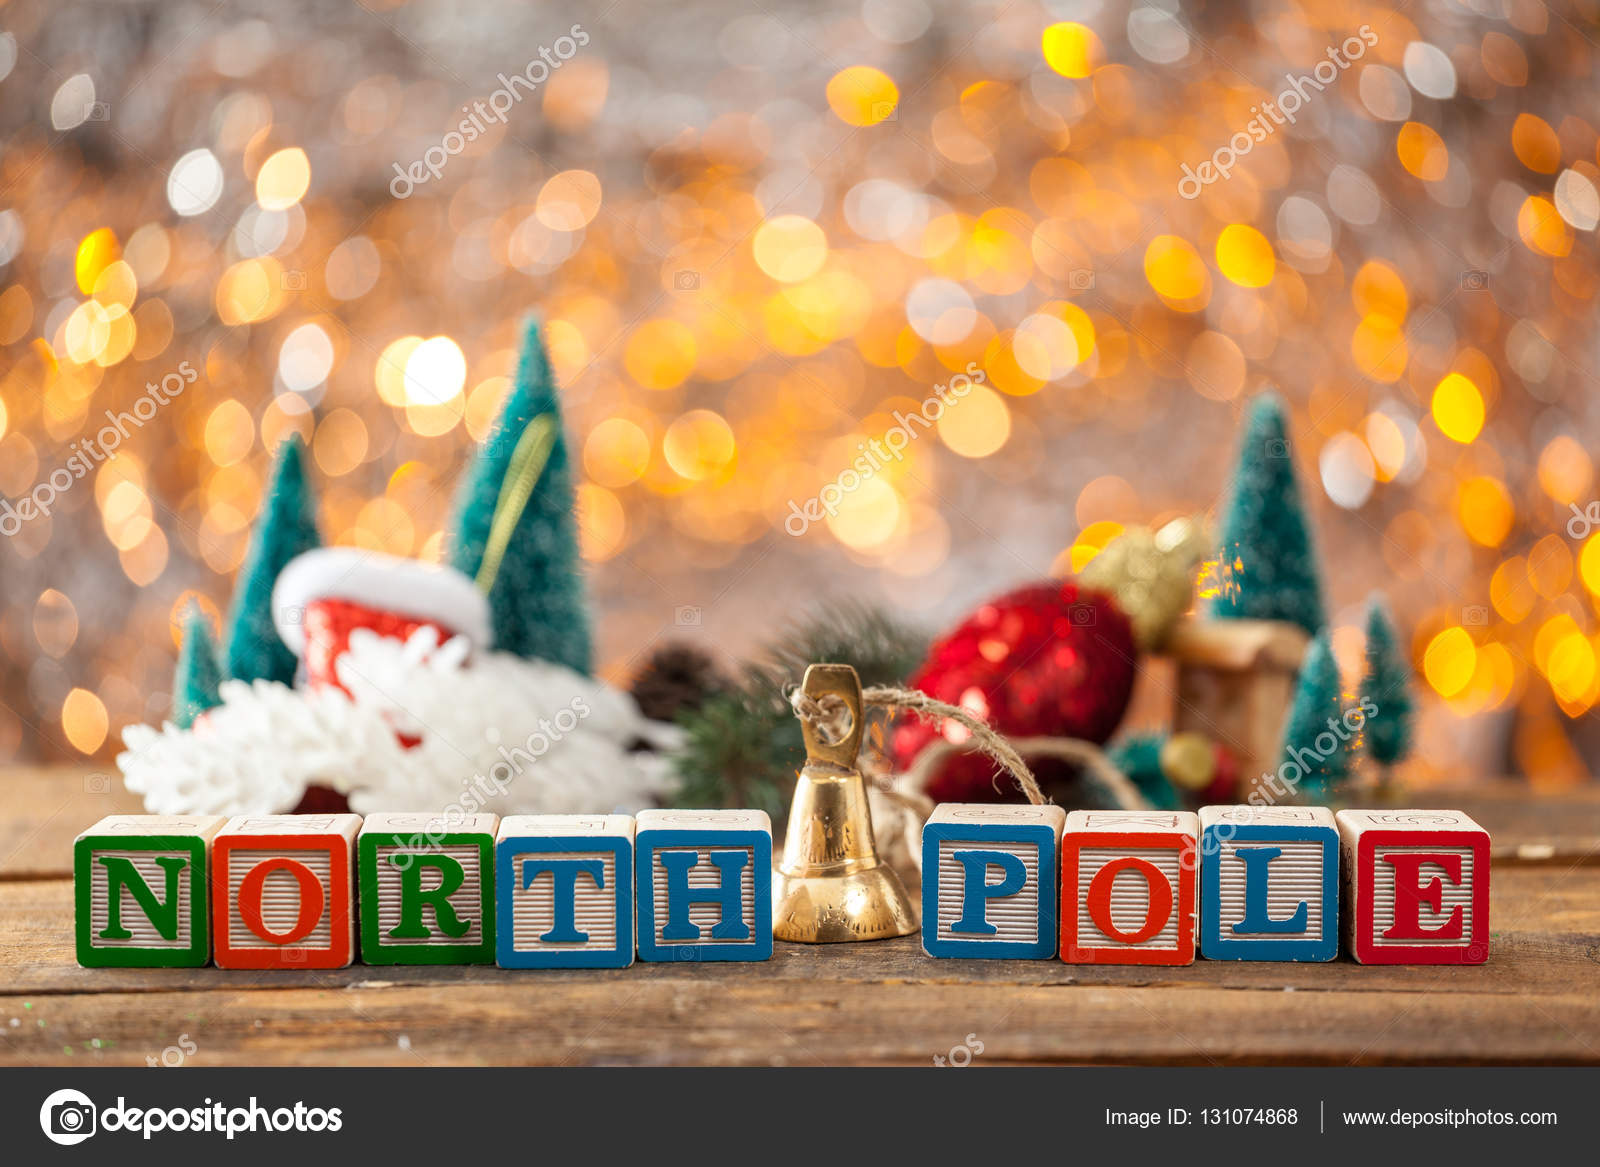 North Pole Written With Toy Blocks On Christmas Card Background ...